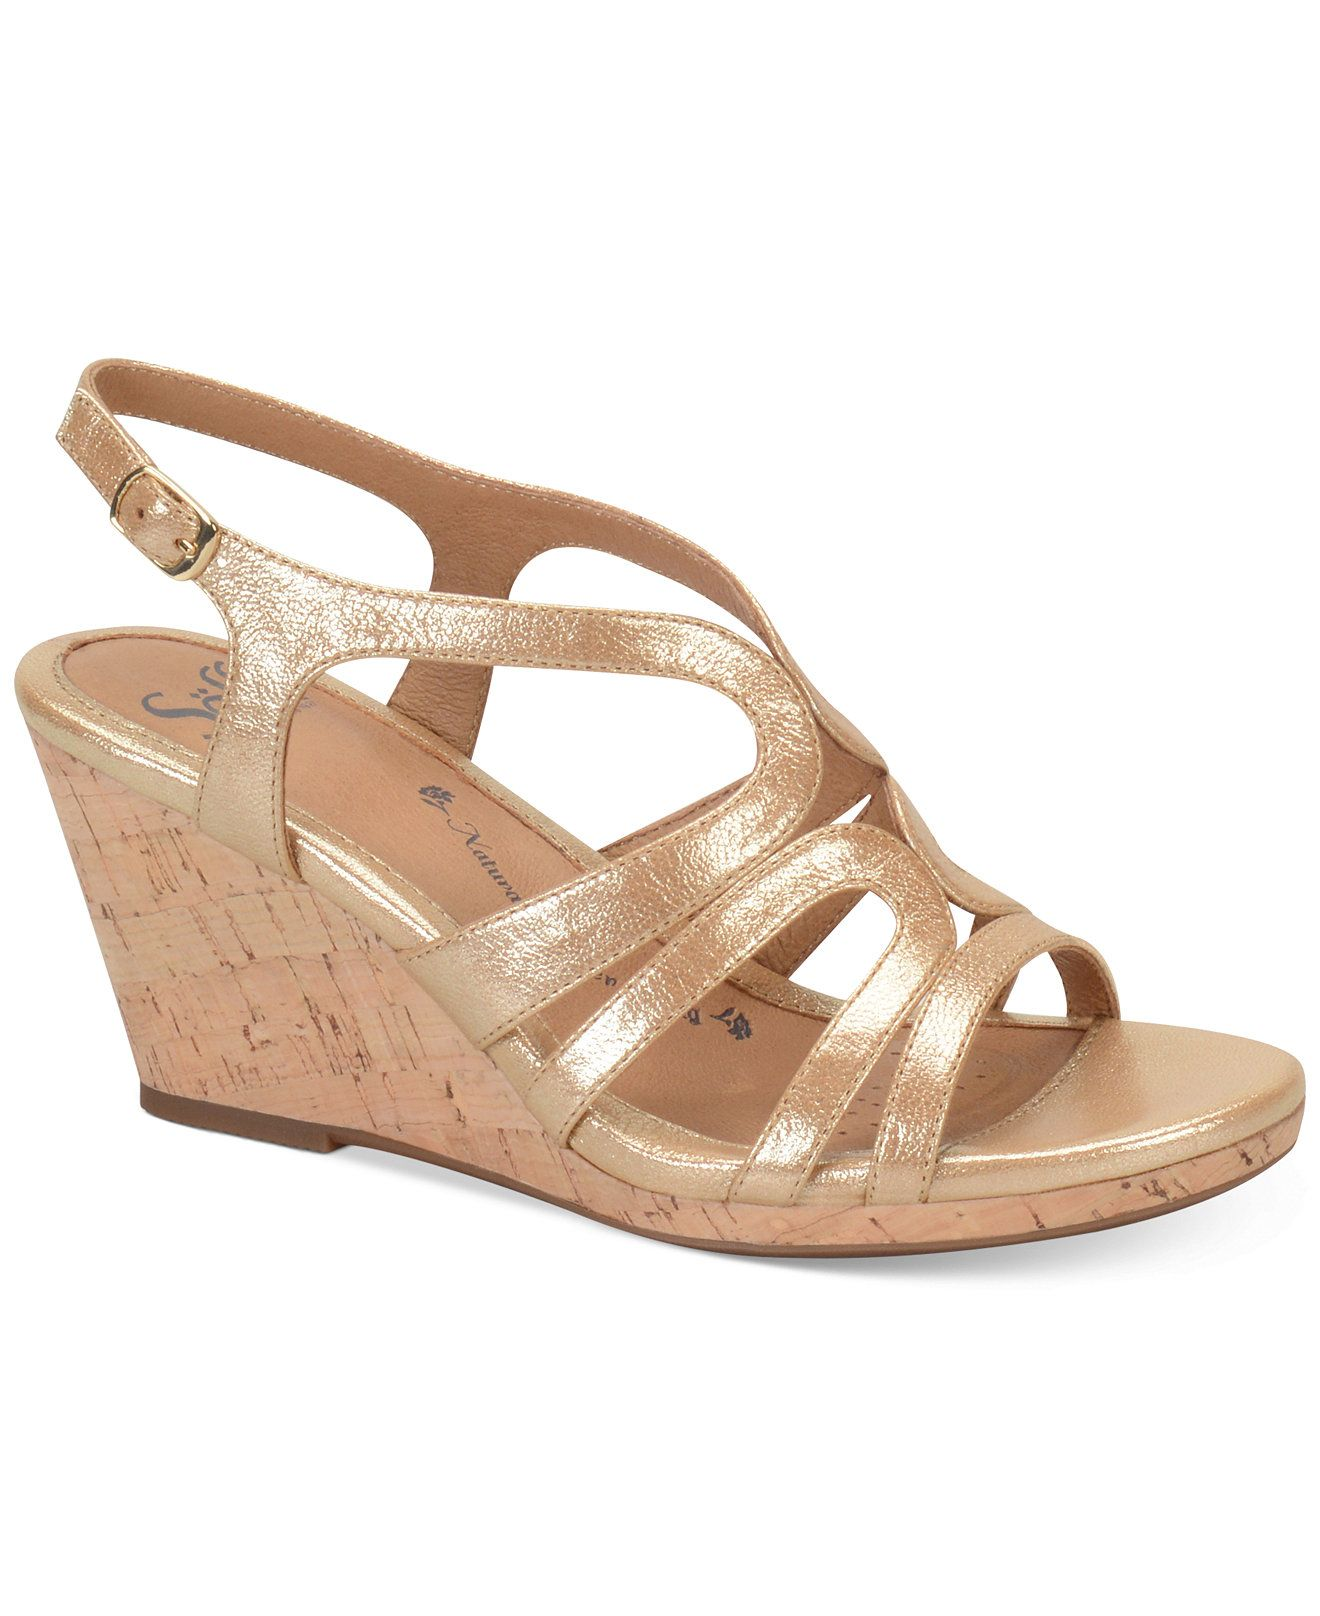 Sofft Corinth Platform Wedge Sandals - Wedges - Shoes - Macy's